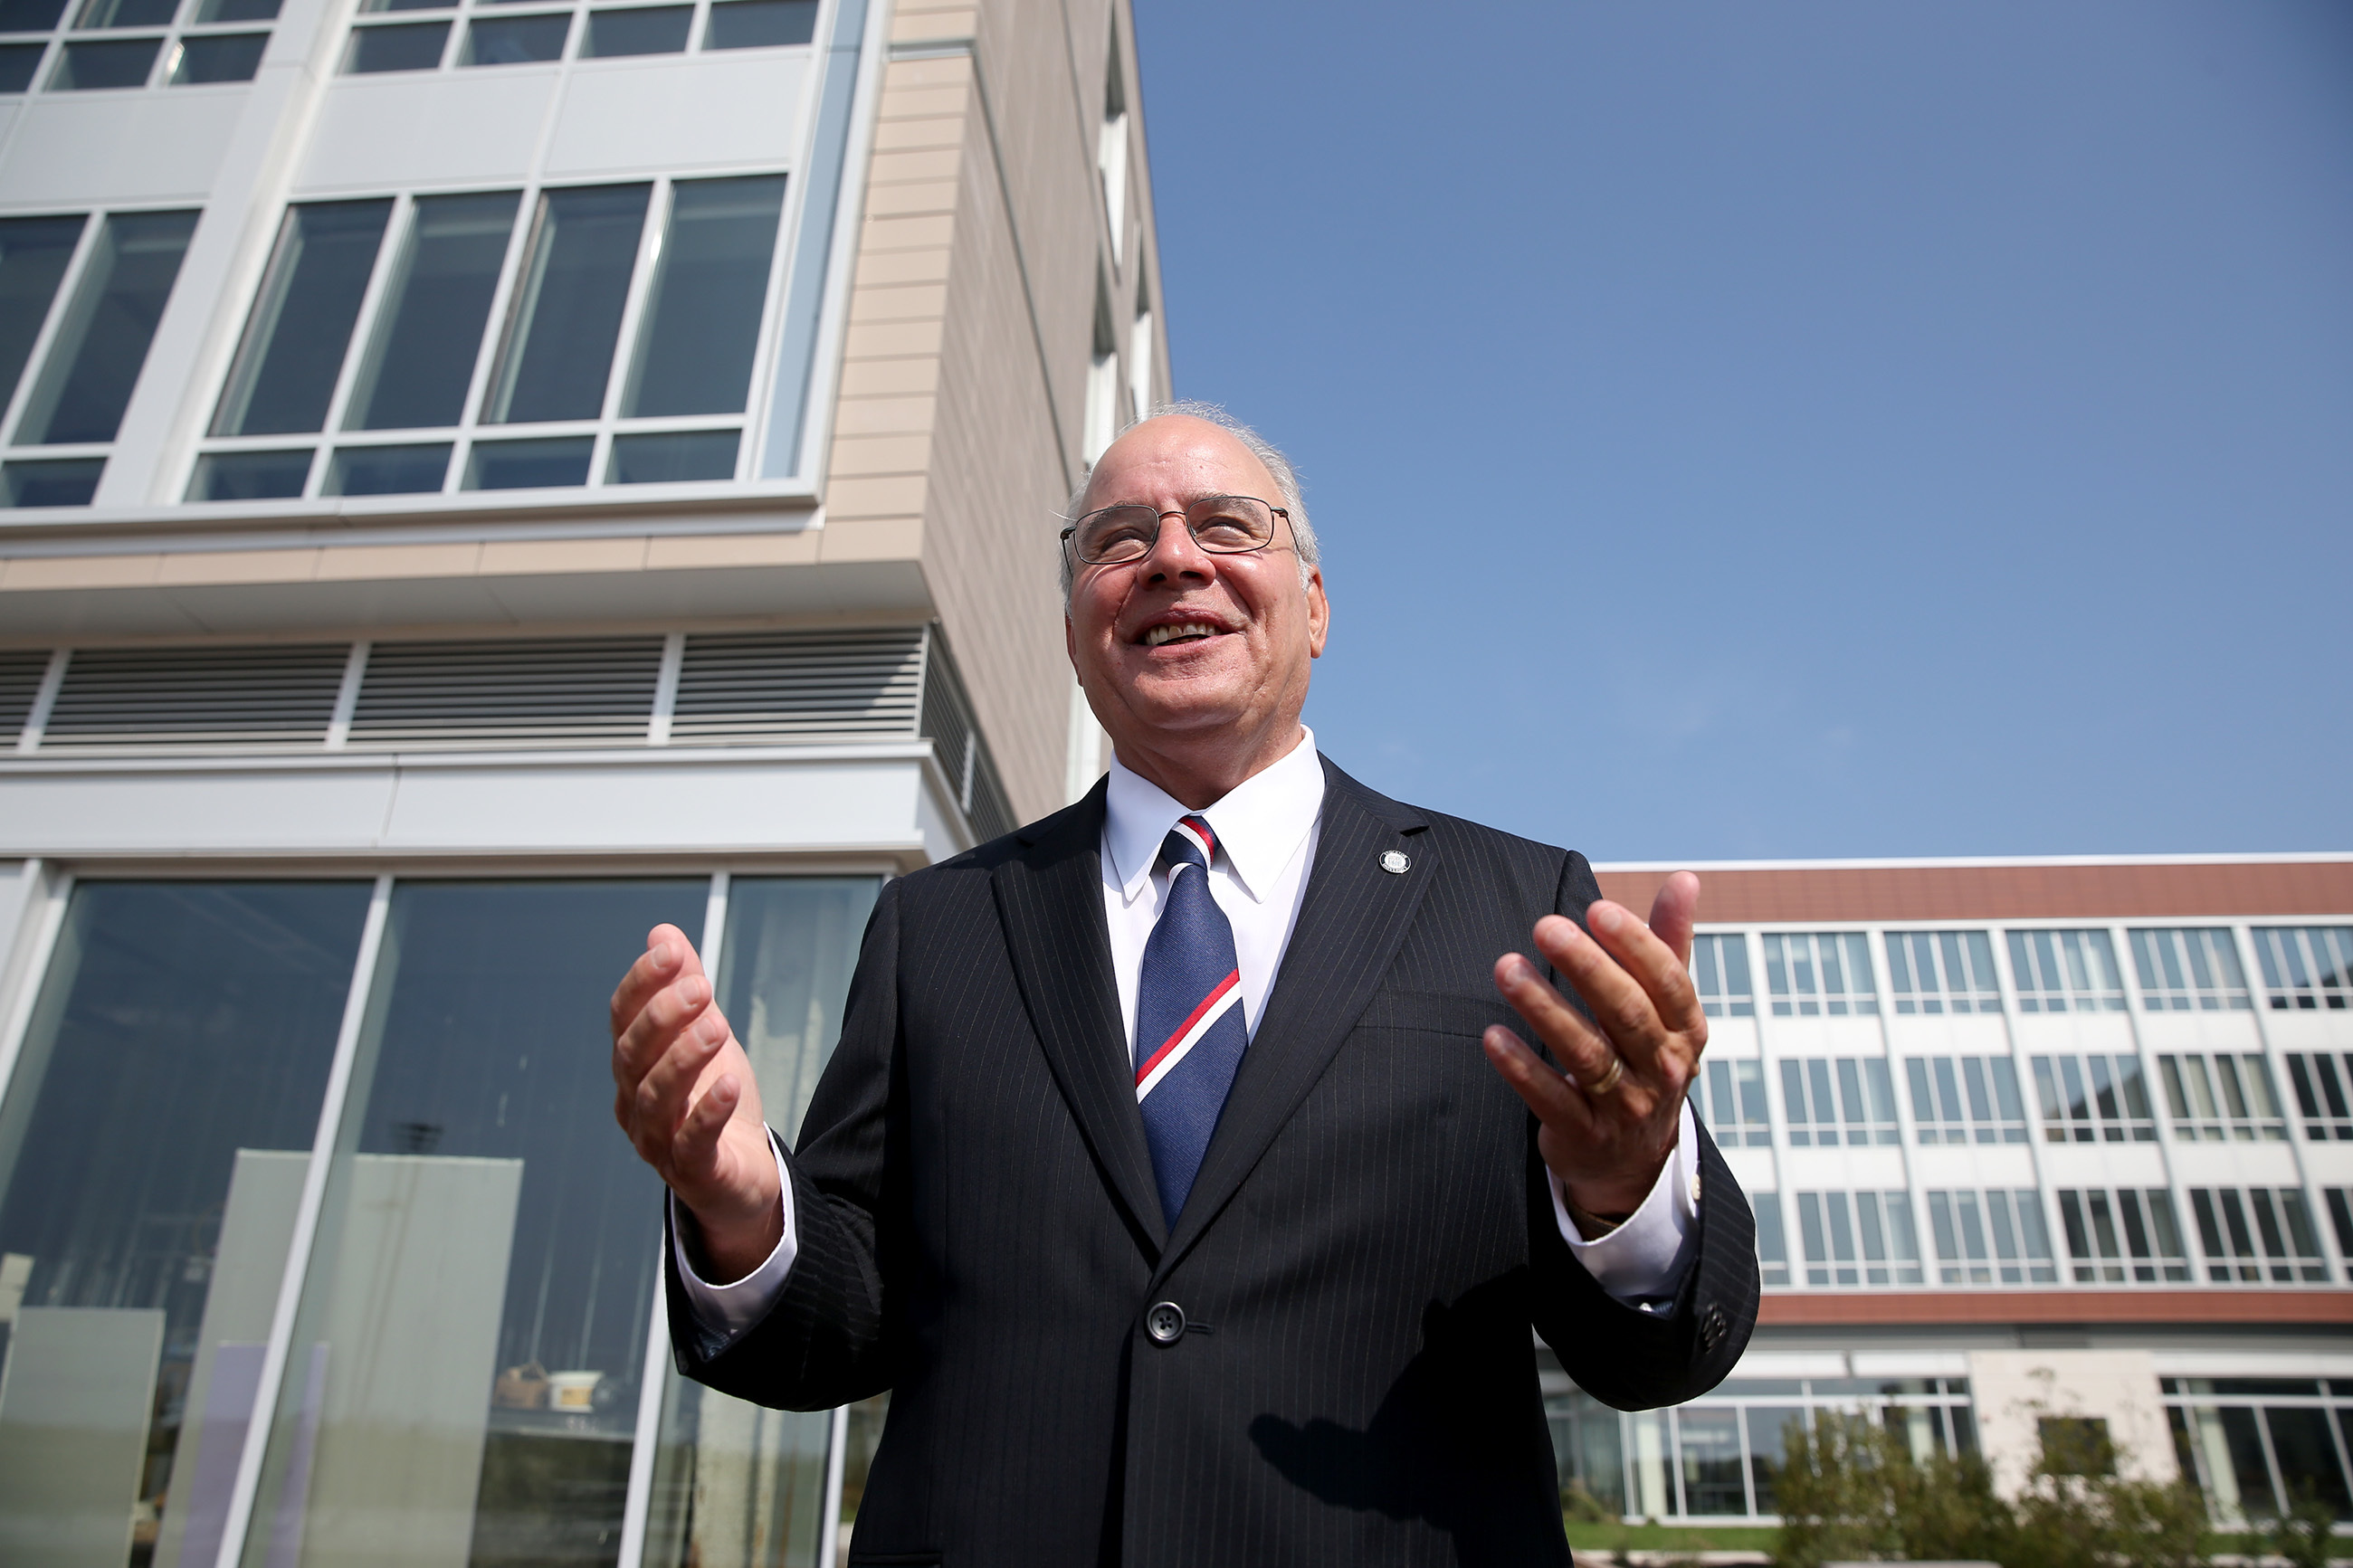 Stockton University president Harvey Kesselman begins a tour of the Stockton´s new Atlantic City campus, standing in front of the new residence hall on the beach front.